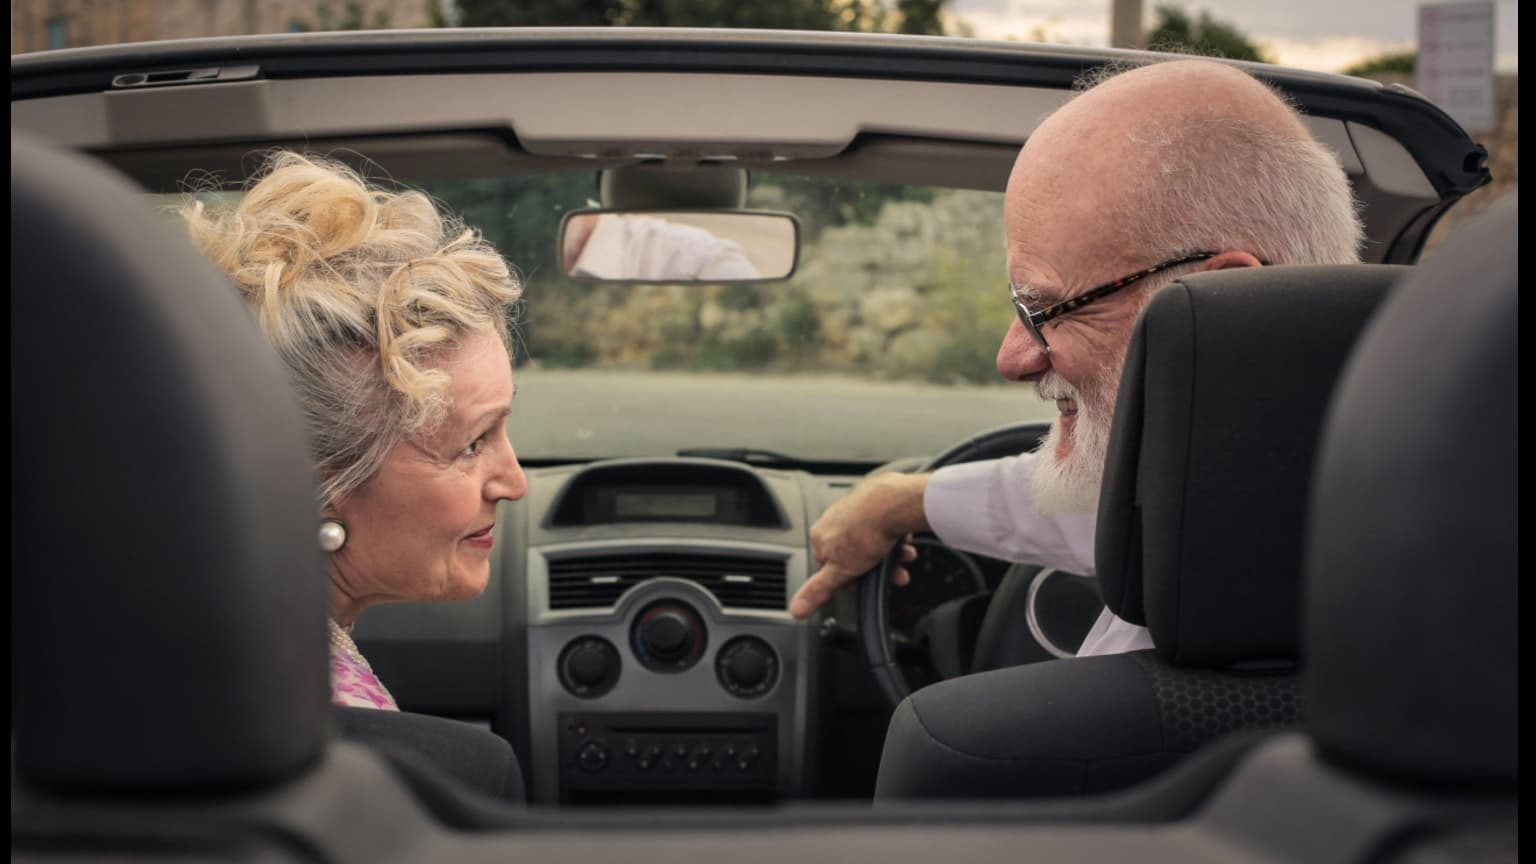 Happy elderly couple in a car